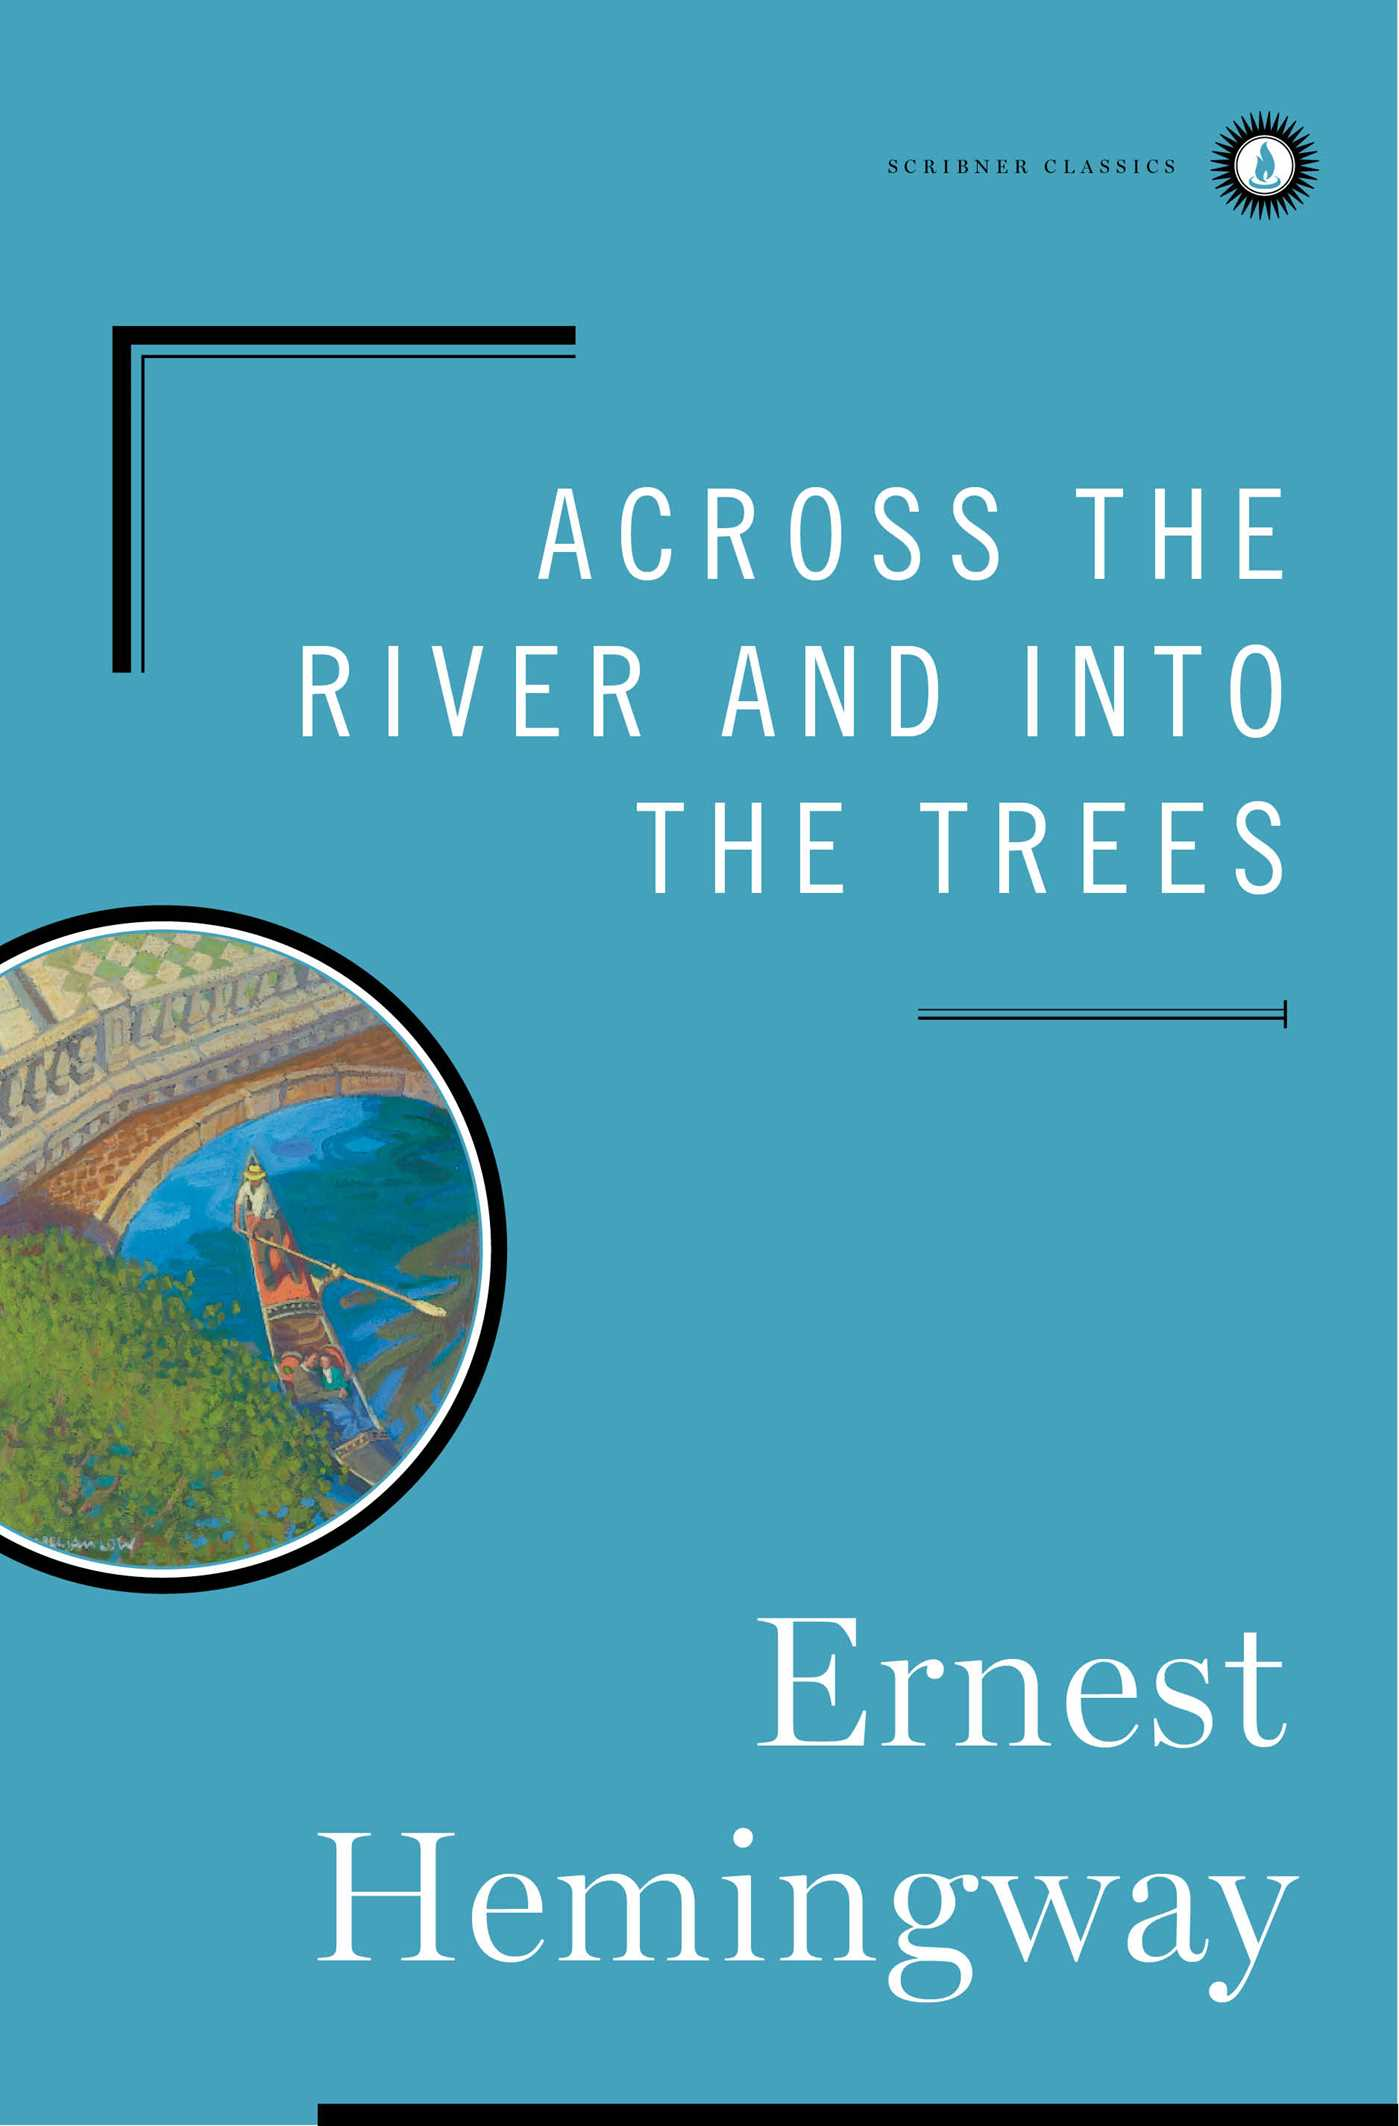 Across the River and Into the Trees eBook by Ernest Hemingway ...